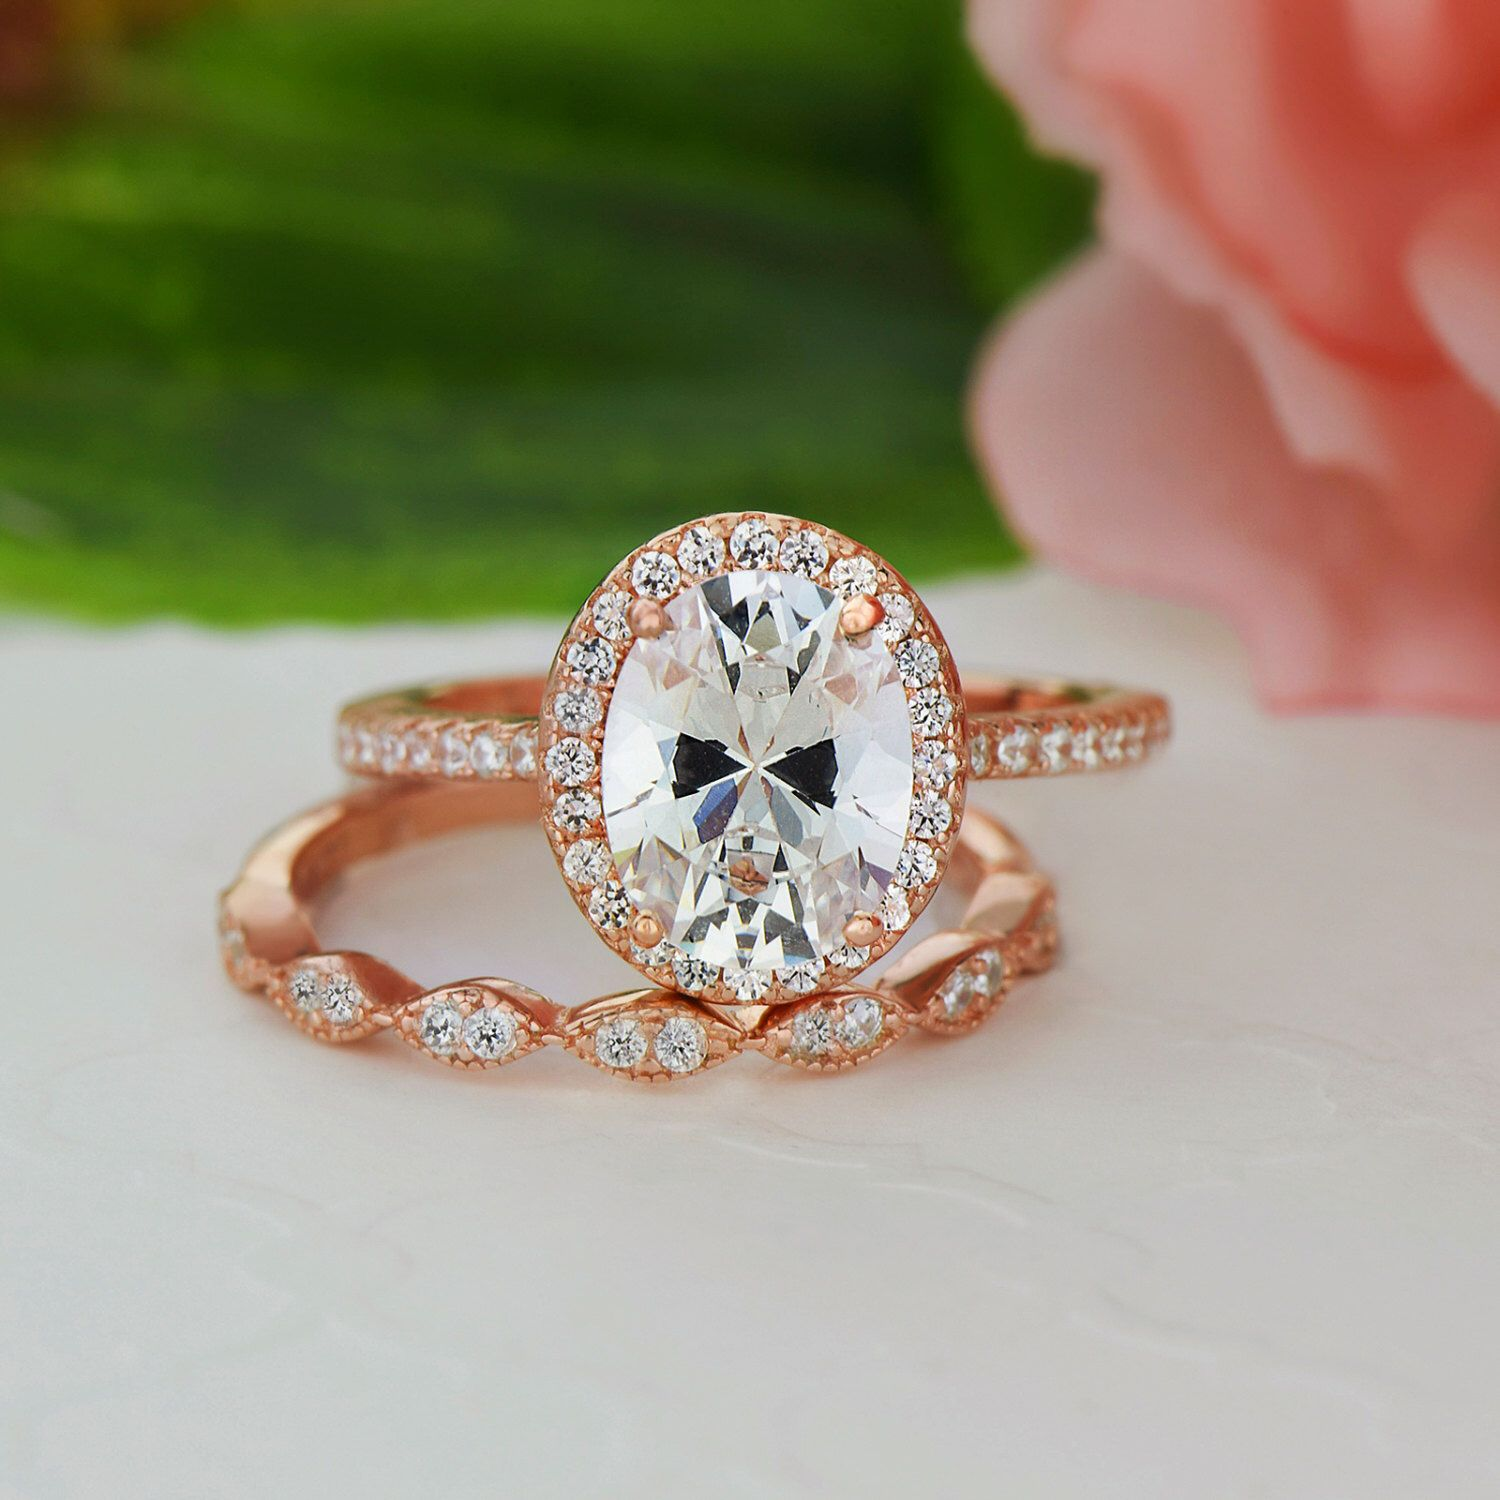 2 25 ctw Oval Bridal Set Vintage Style Engagement Ring Man Made